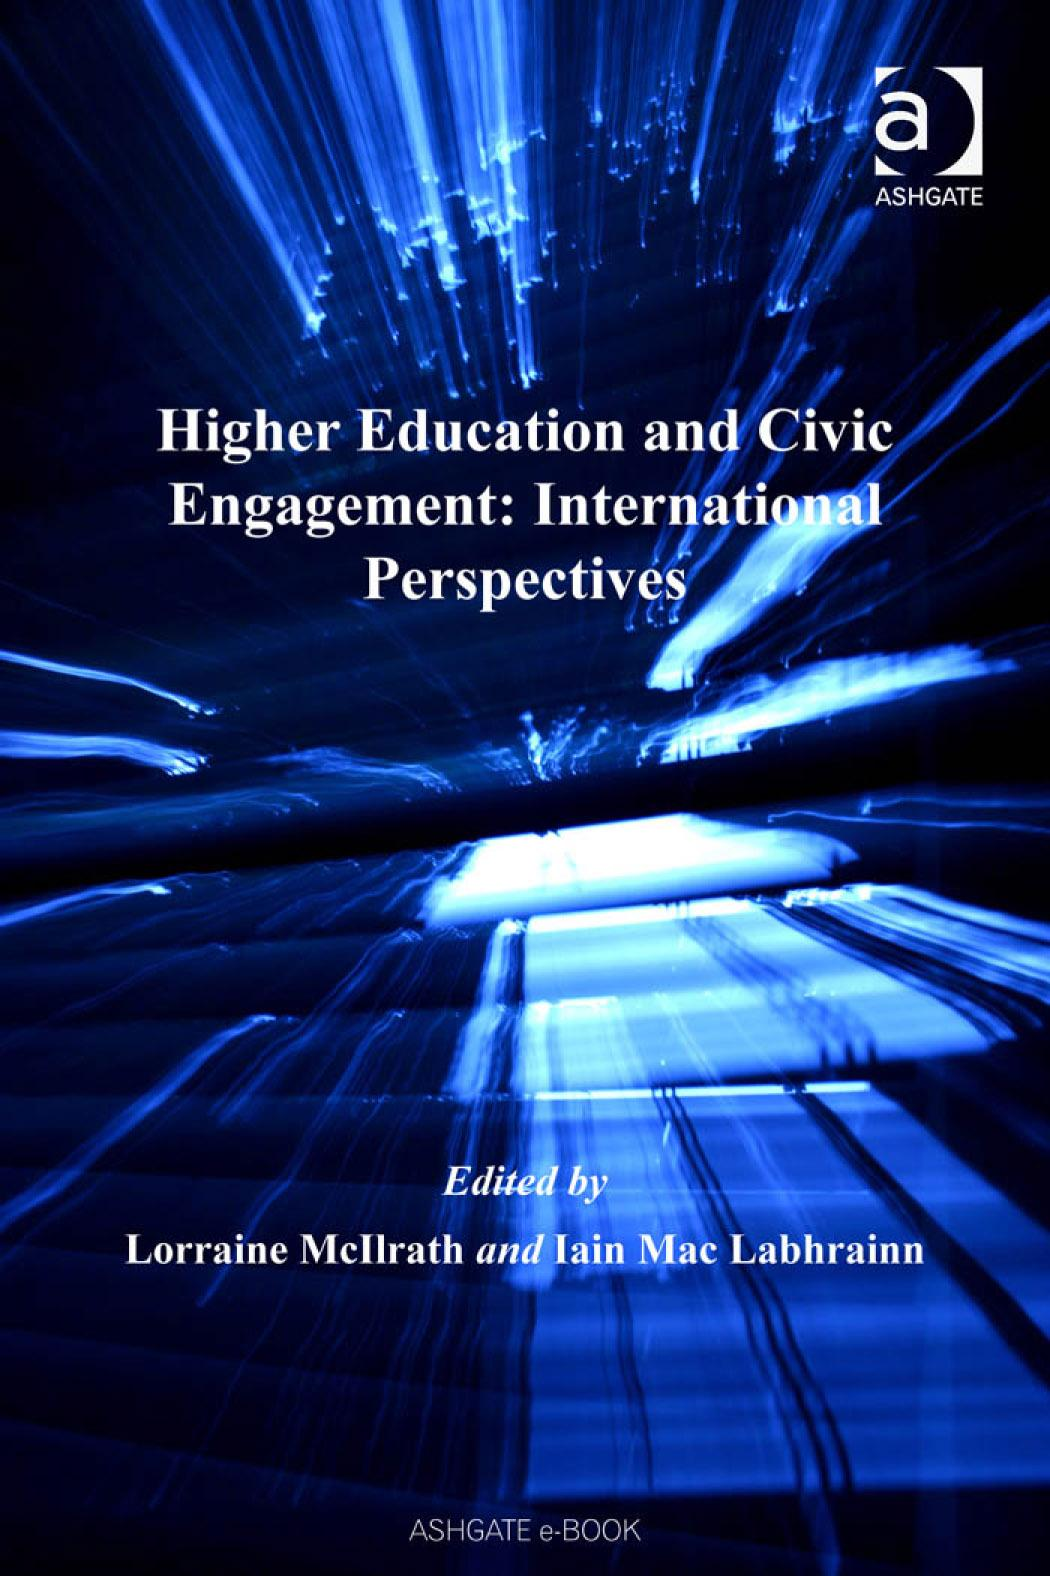 Higher Education and Civic Engagement: International PerspectivesCorporate Social Responsibility Series